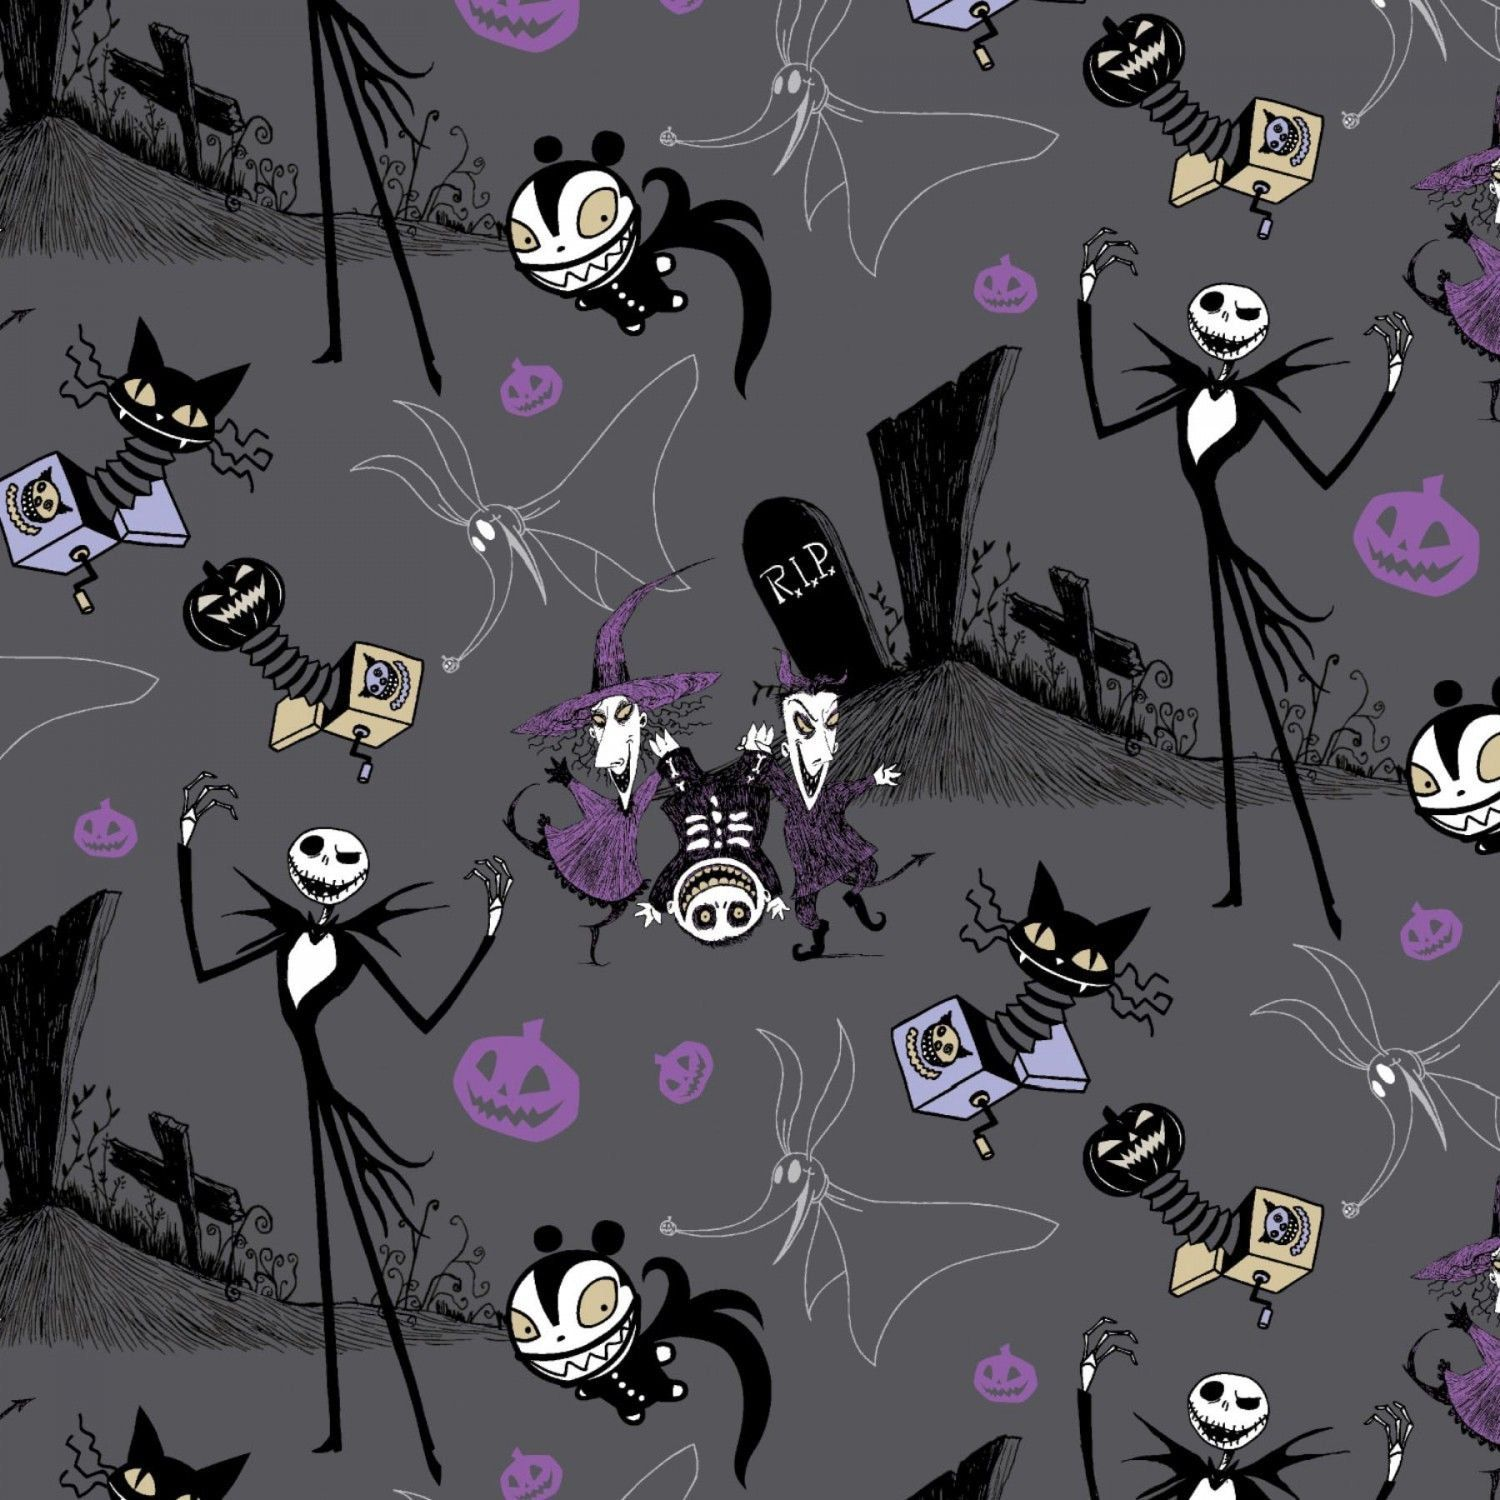 HALF YARD Camelot Nightmare Before Christmas On The Hill Swirls Grey